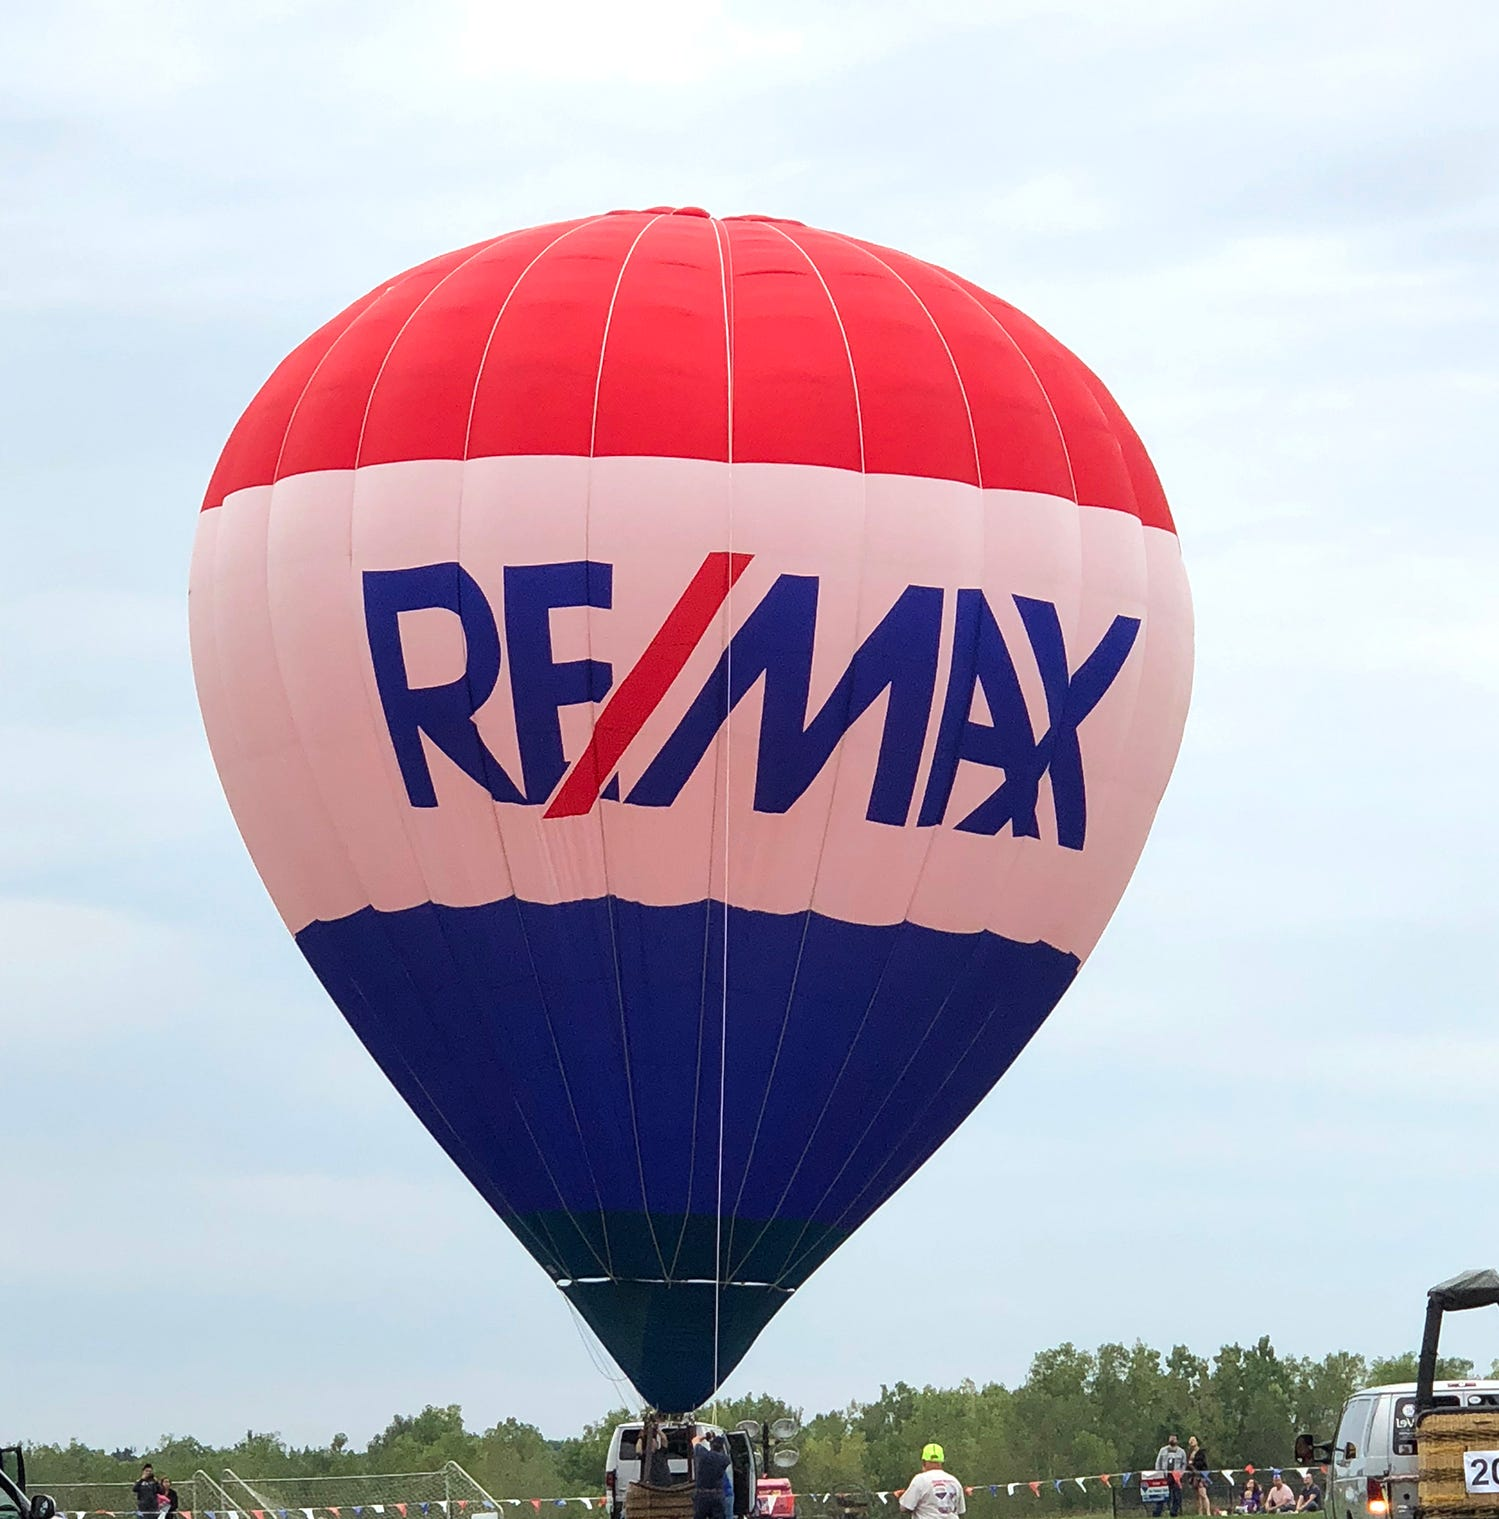 RE/MAX Balloon Fest a Big Success for the Lansing Promise